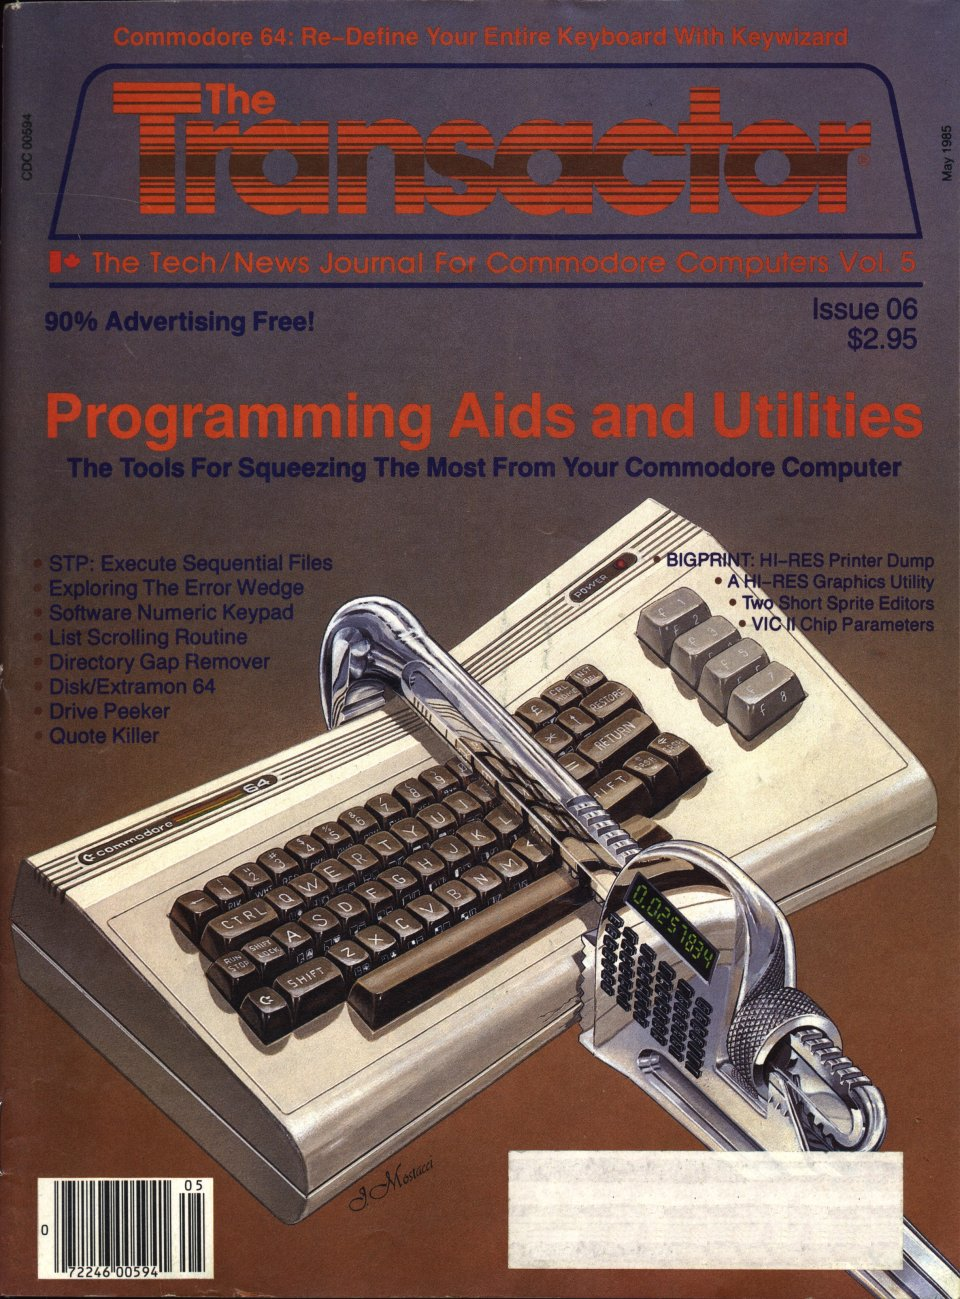 [Cover Page of The Transactor Volume 5, Issue 6: Programming Aids and Utilities]